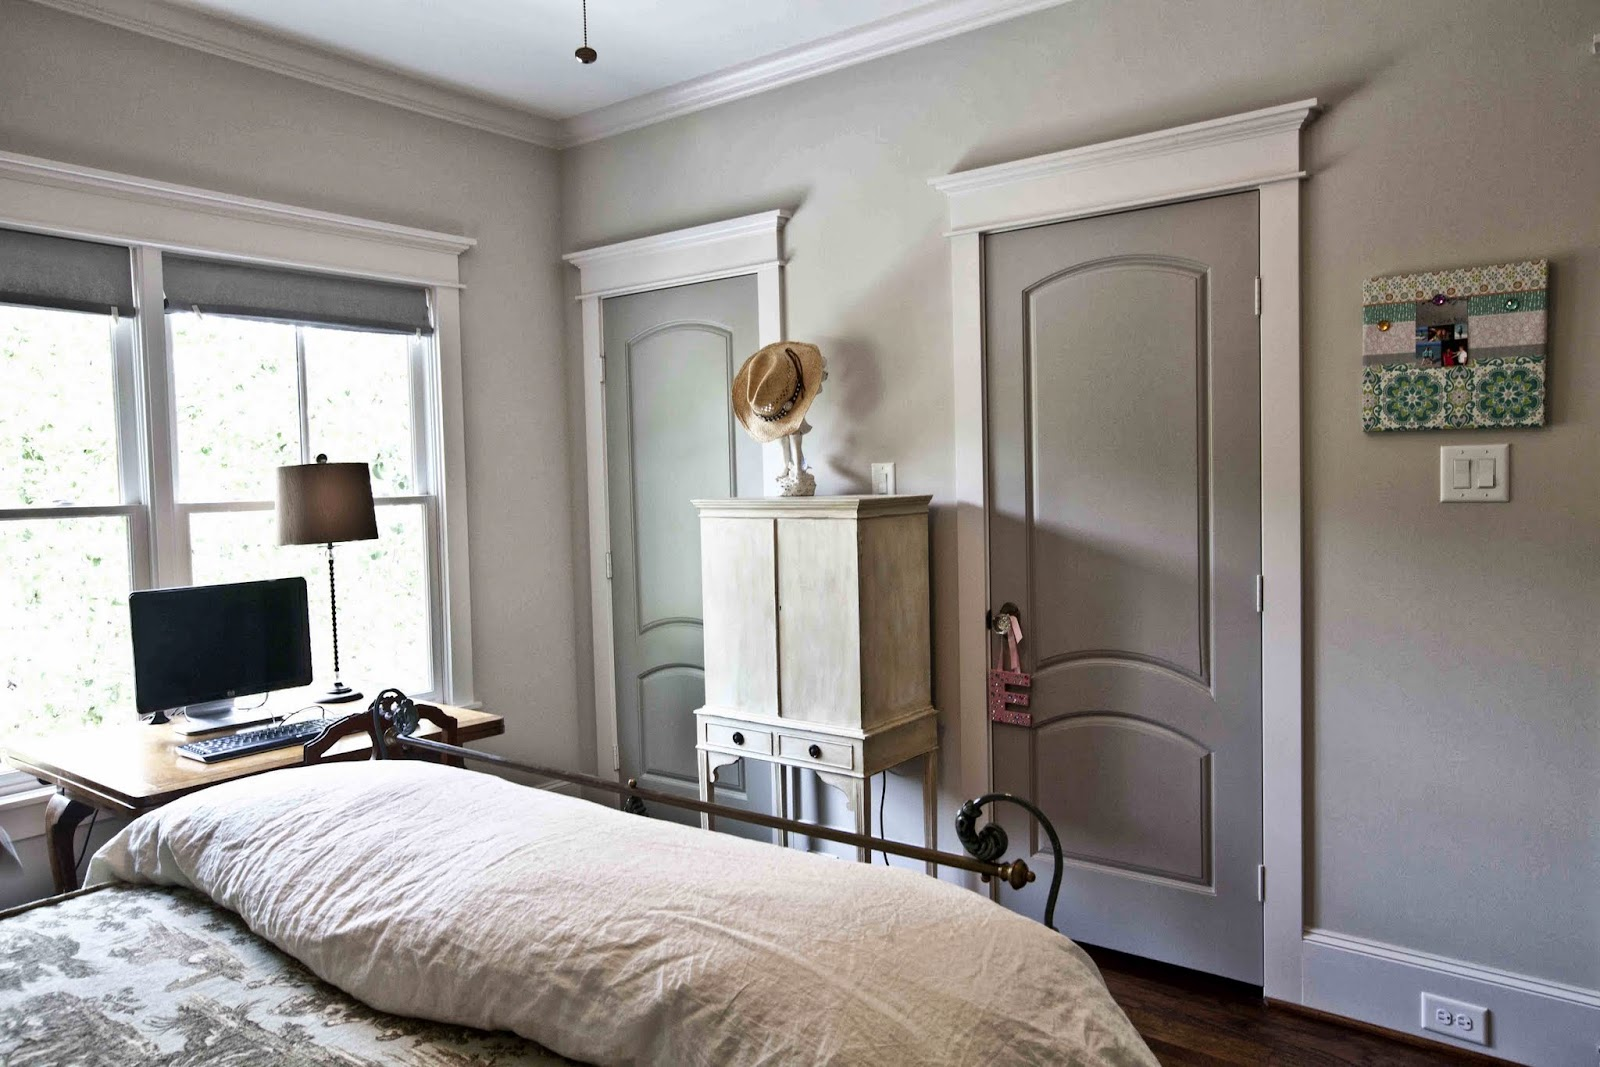 Toile bedroom cedar hill farmhouse for Painting trim darker than walls